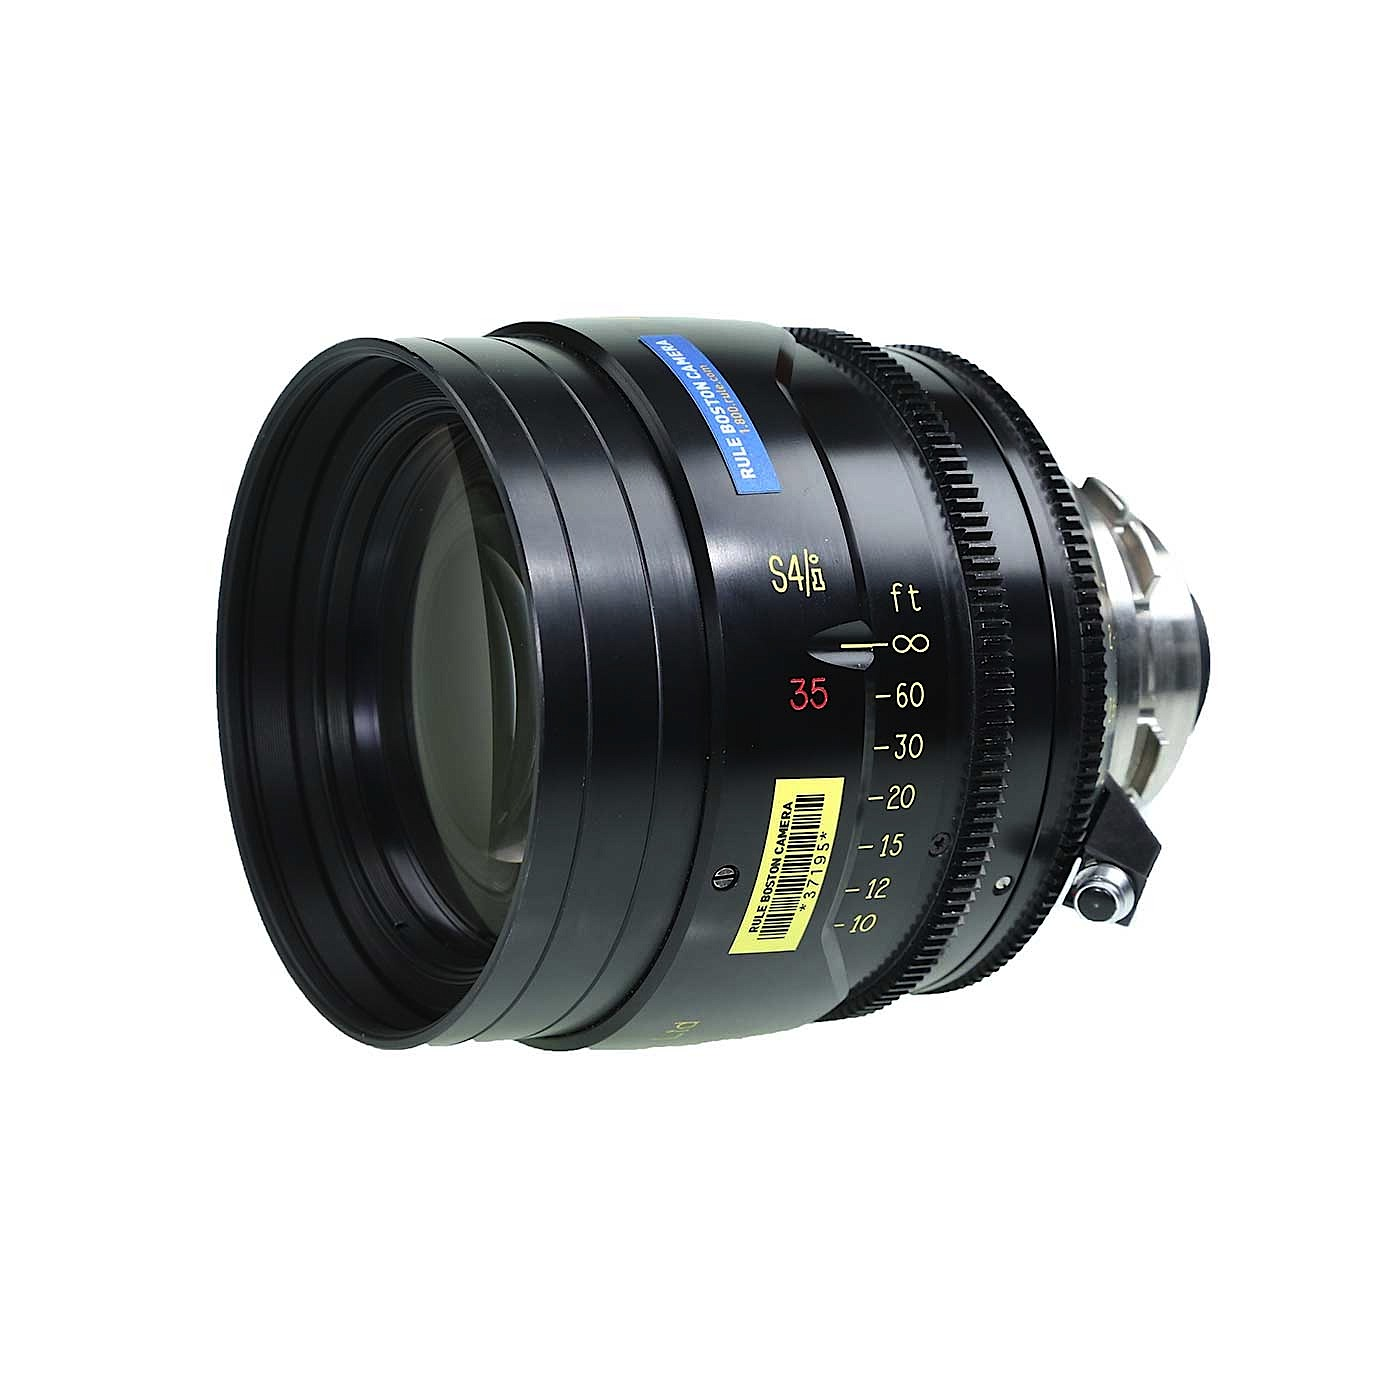 Cooke 35mm S4 PL Prime Lens